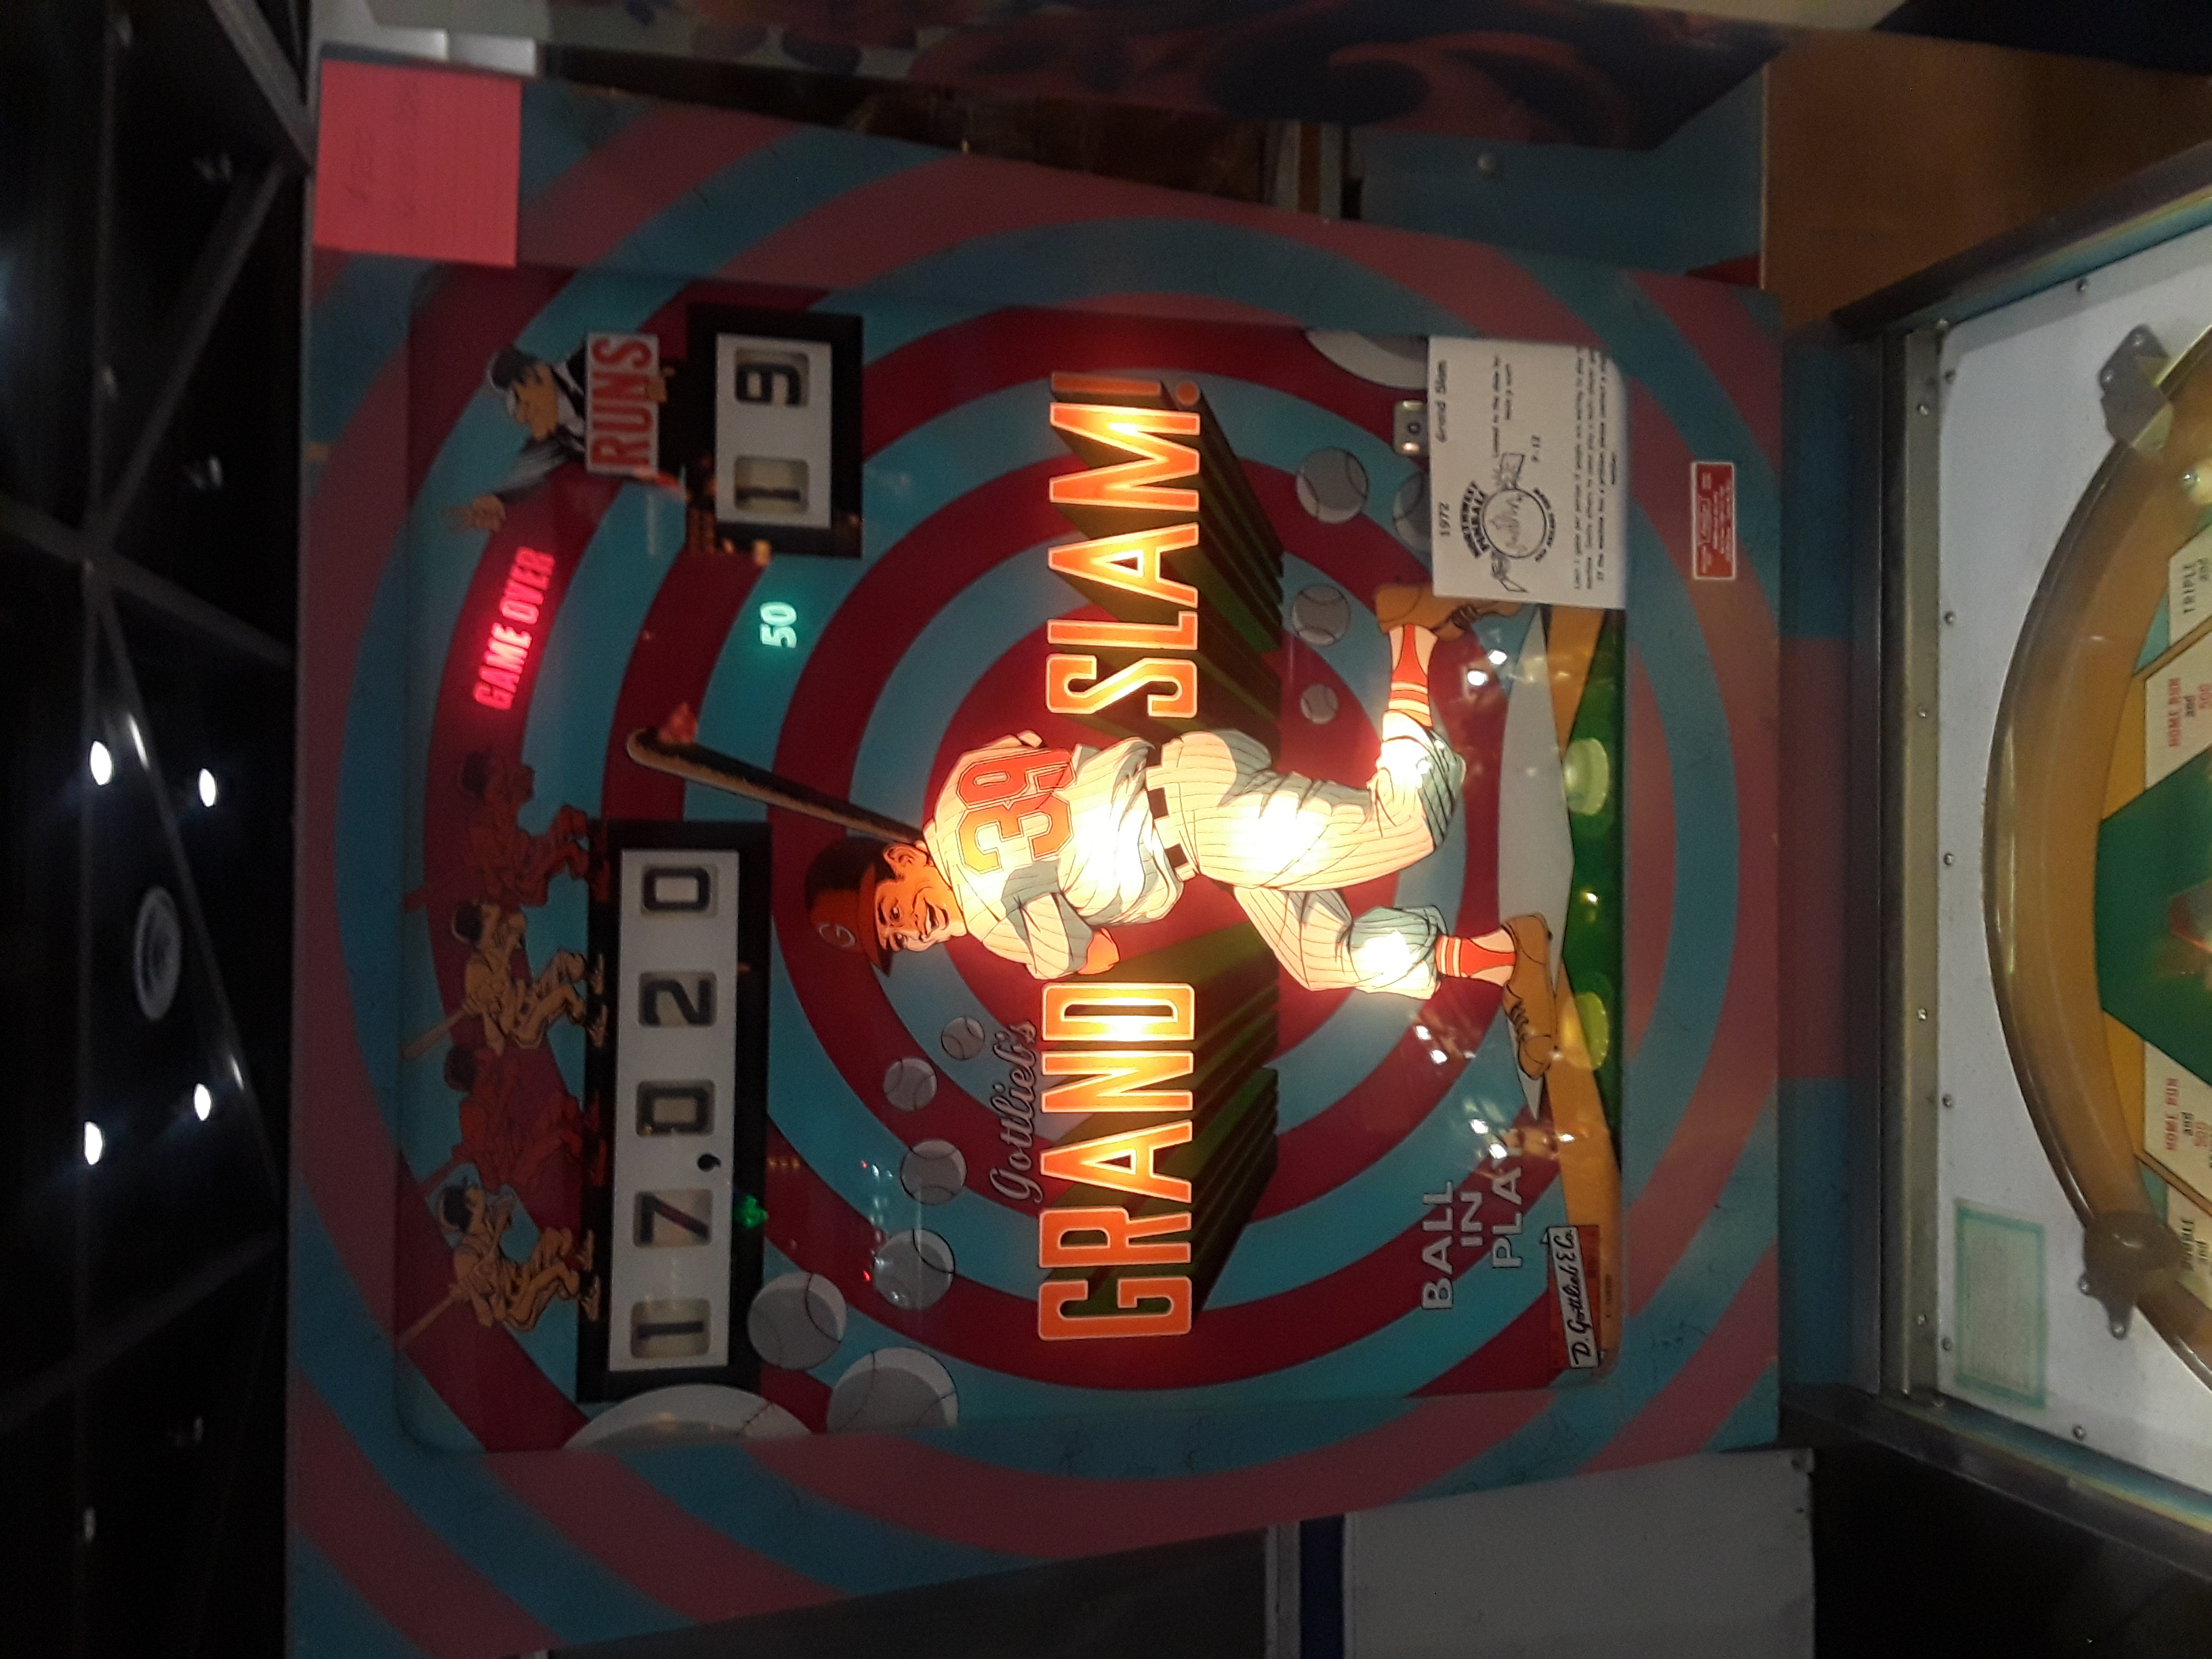 Grand Slam [Bally Midway] 17,020 points